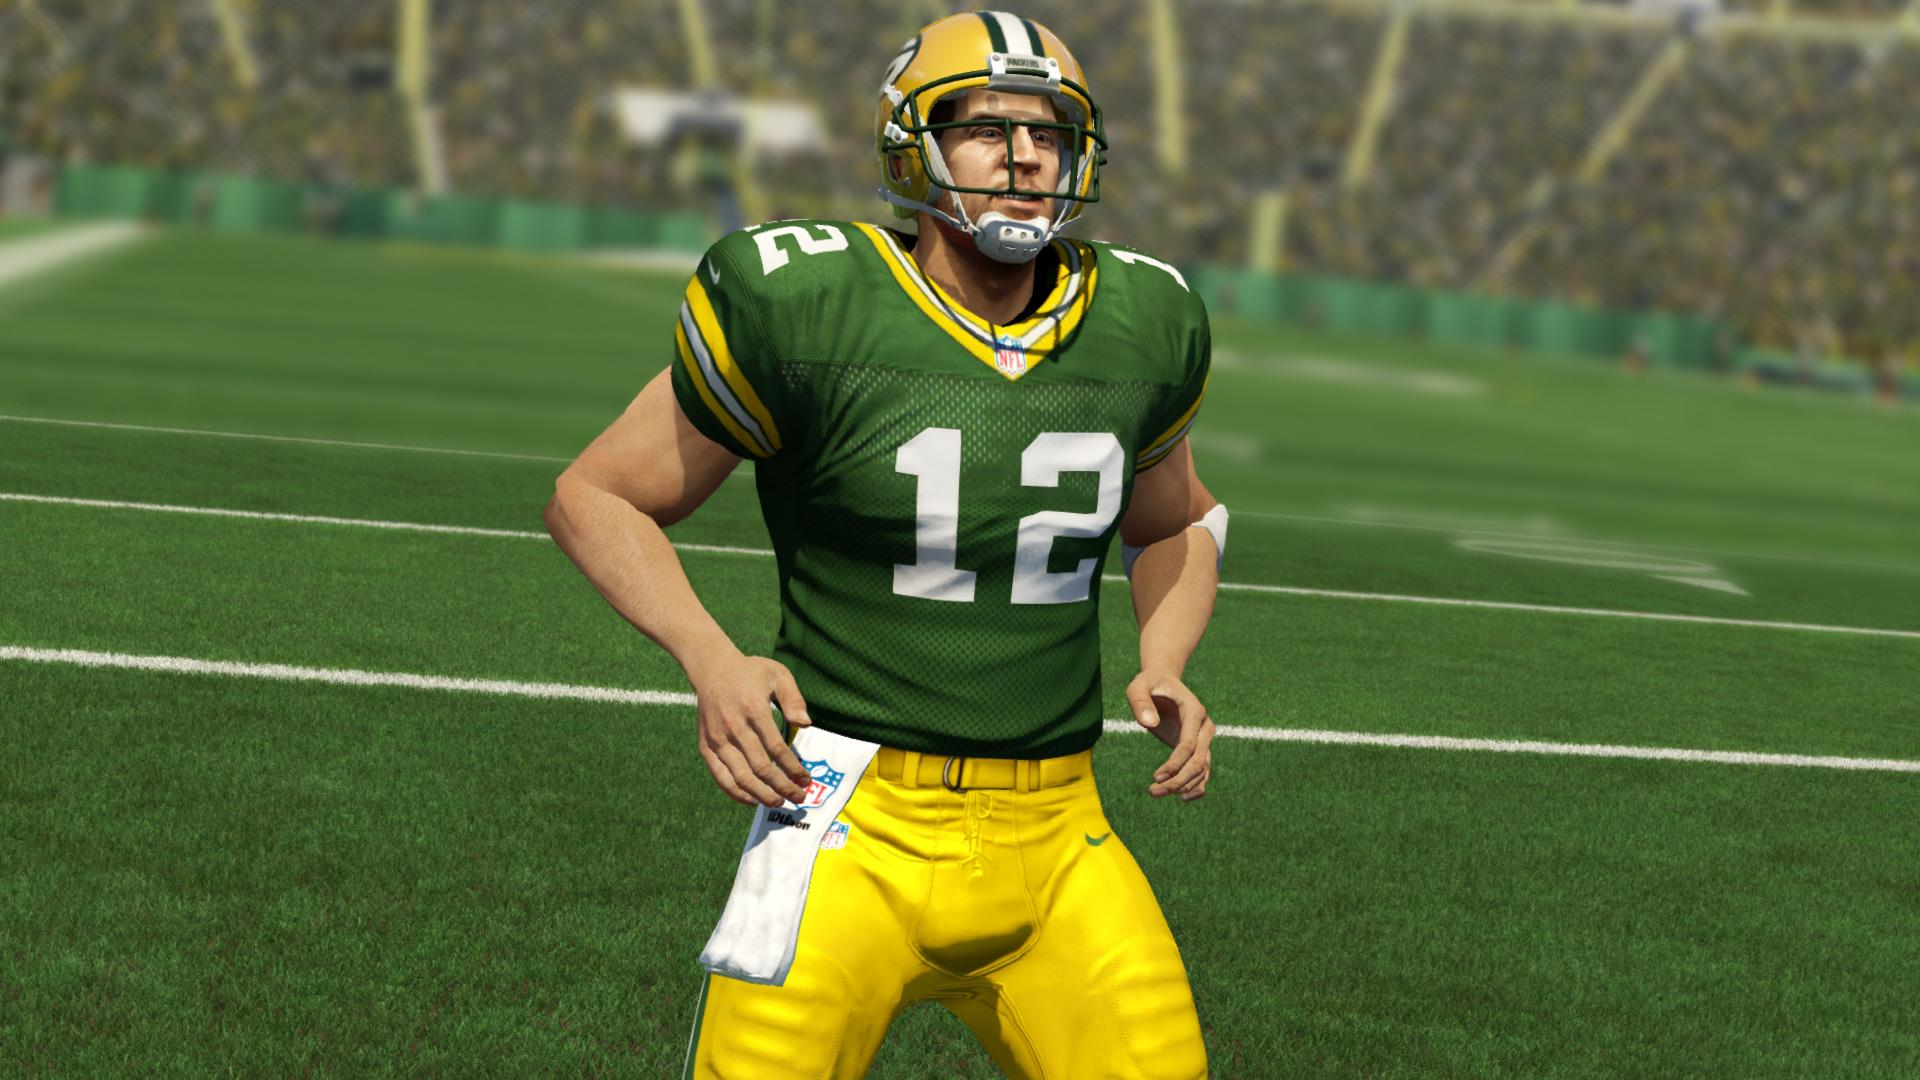 Going for Gold in Madden NFL 25 (Xbox One)